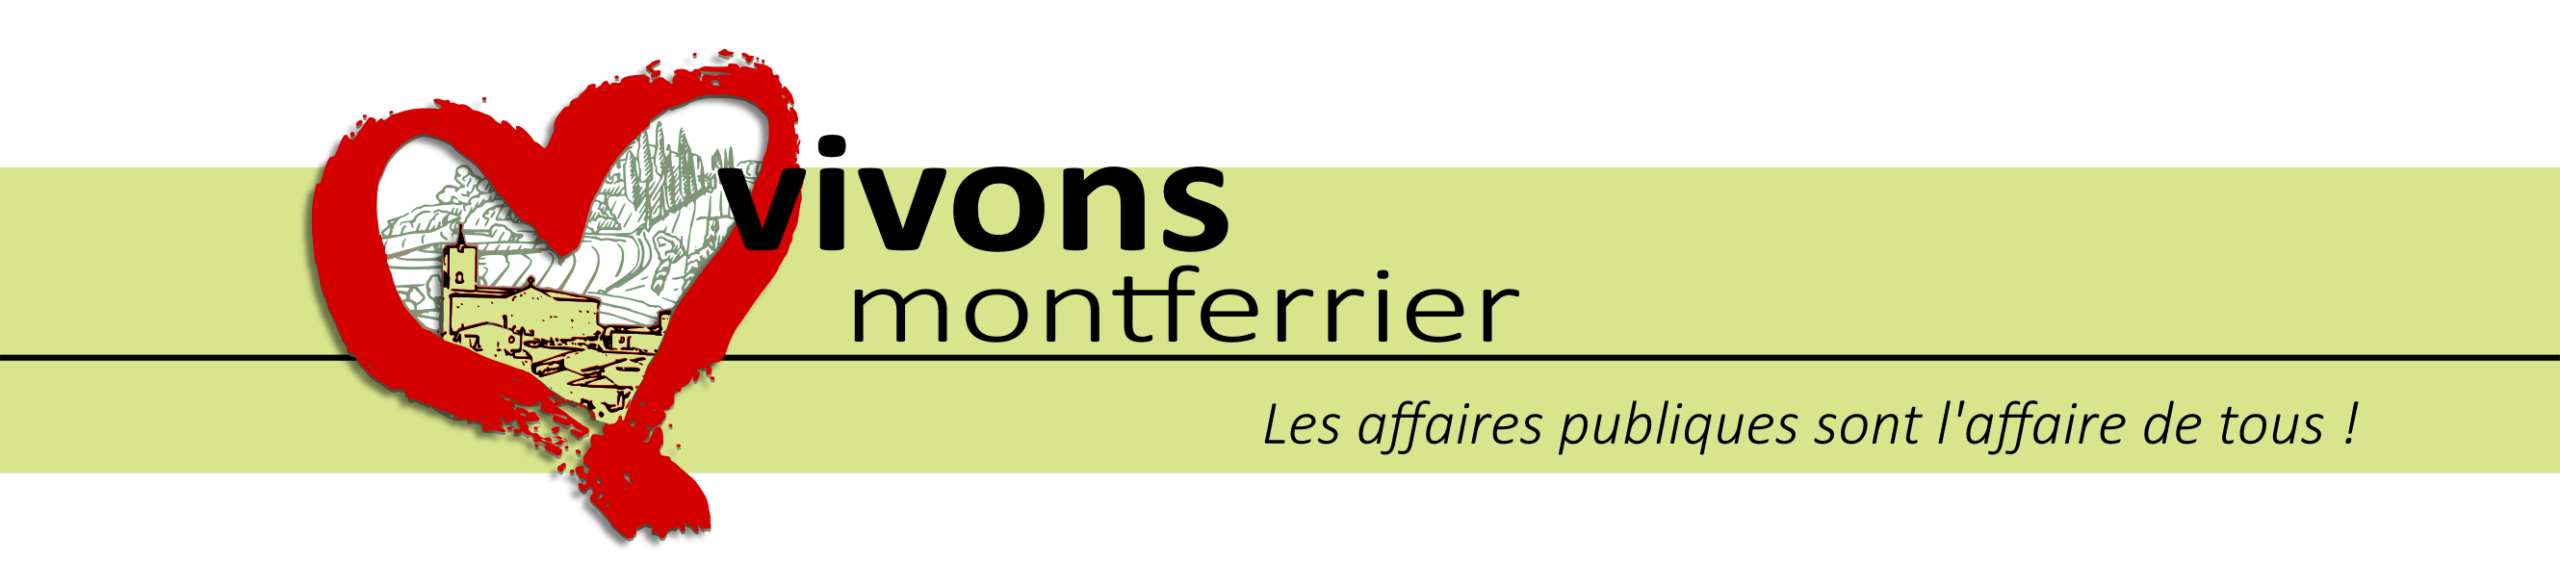 vivons montferrier